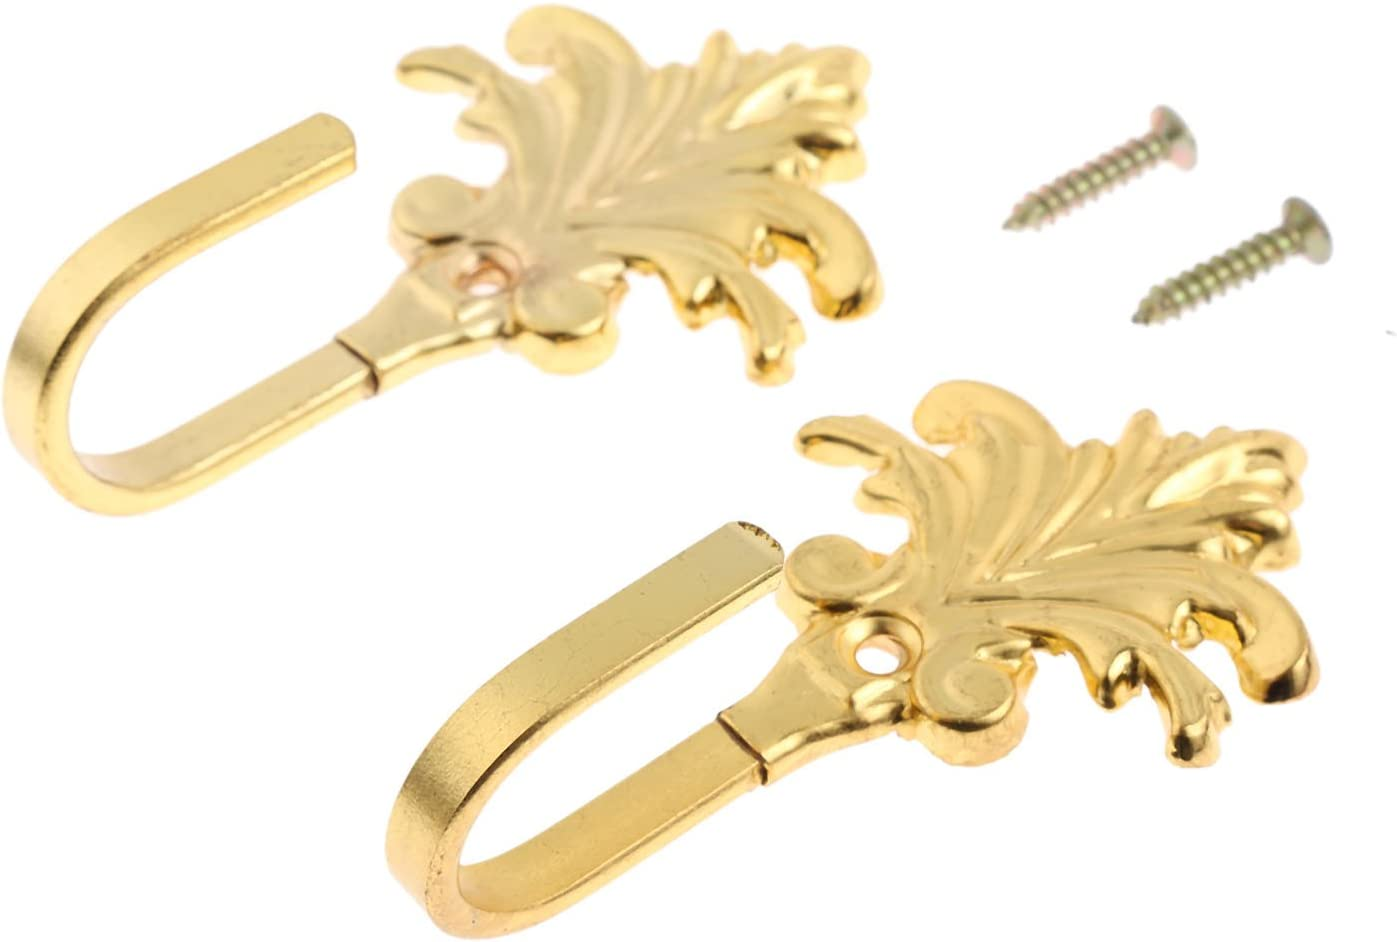 Hicello 2Pcs Wall Hooks Gold Vintage Maple Leaves Drapery Door Wall Towel Cloth Coat Key Hook Multi-Function Decorative Hook with Screws